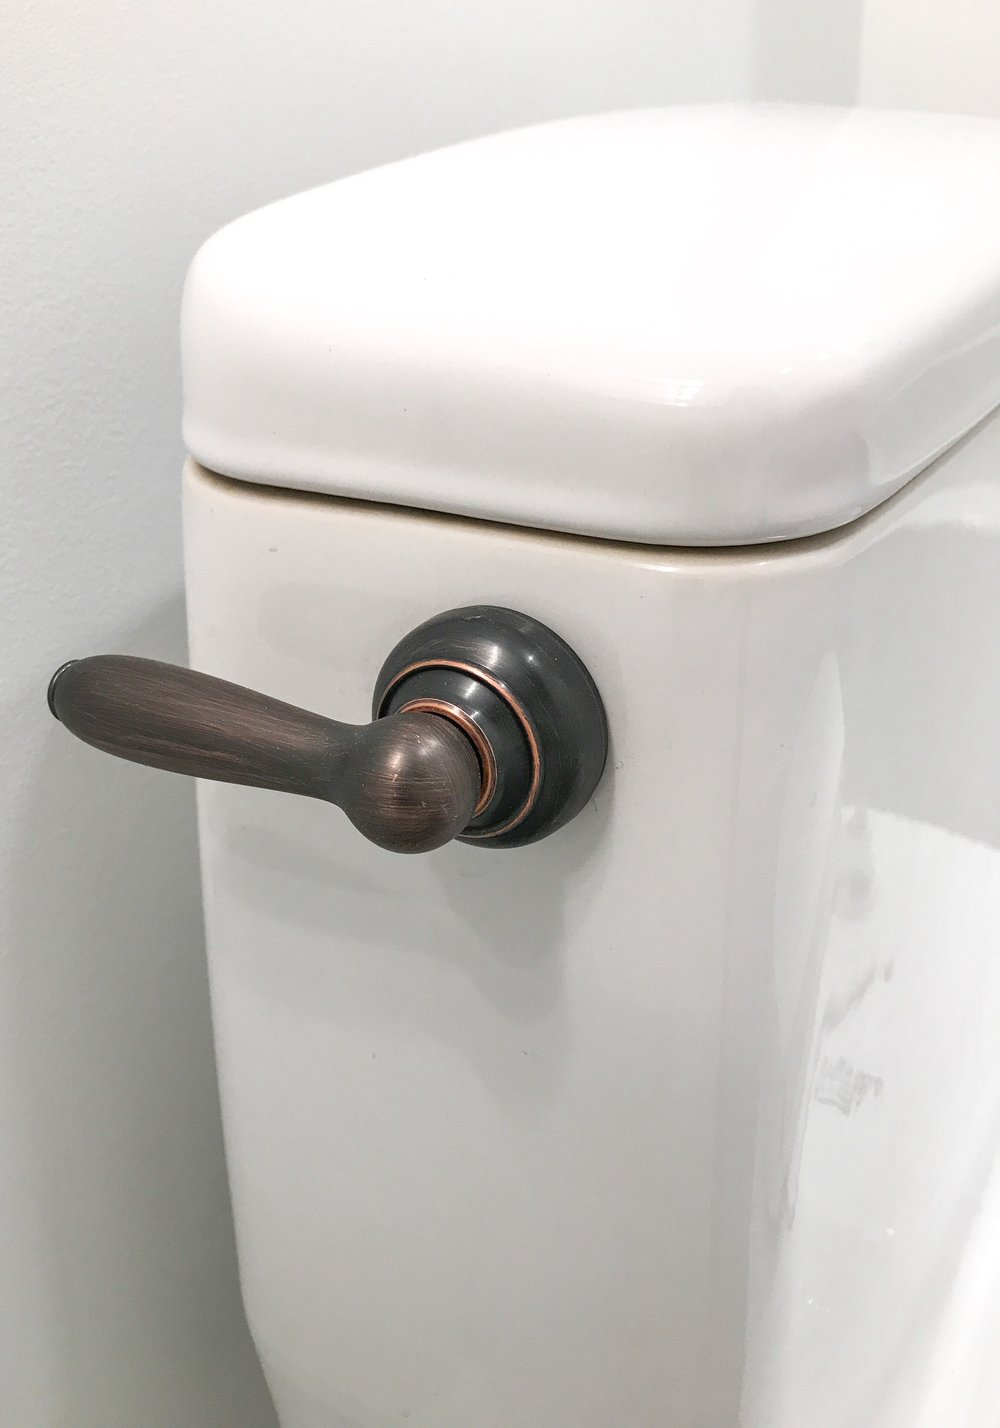 Salvaged Toilets - How To Give Your Toilet a New Look. Fluidmaster Tank Levers. #sponsored